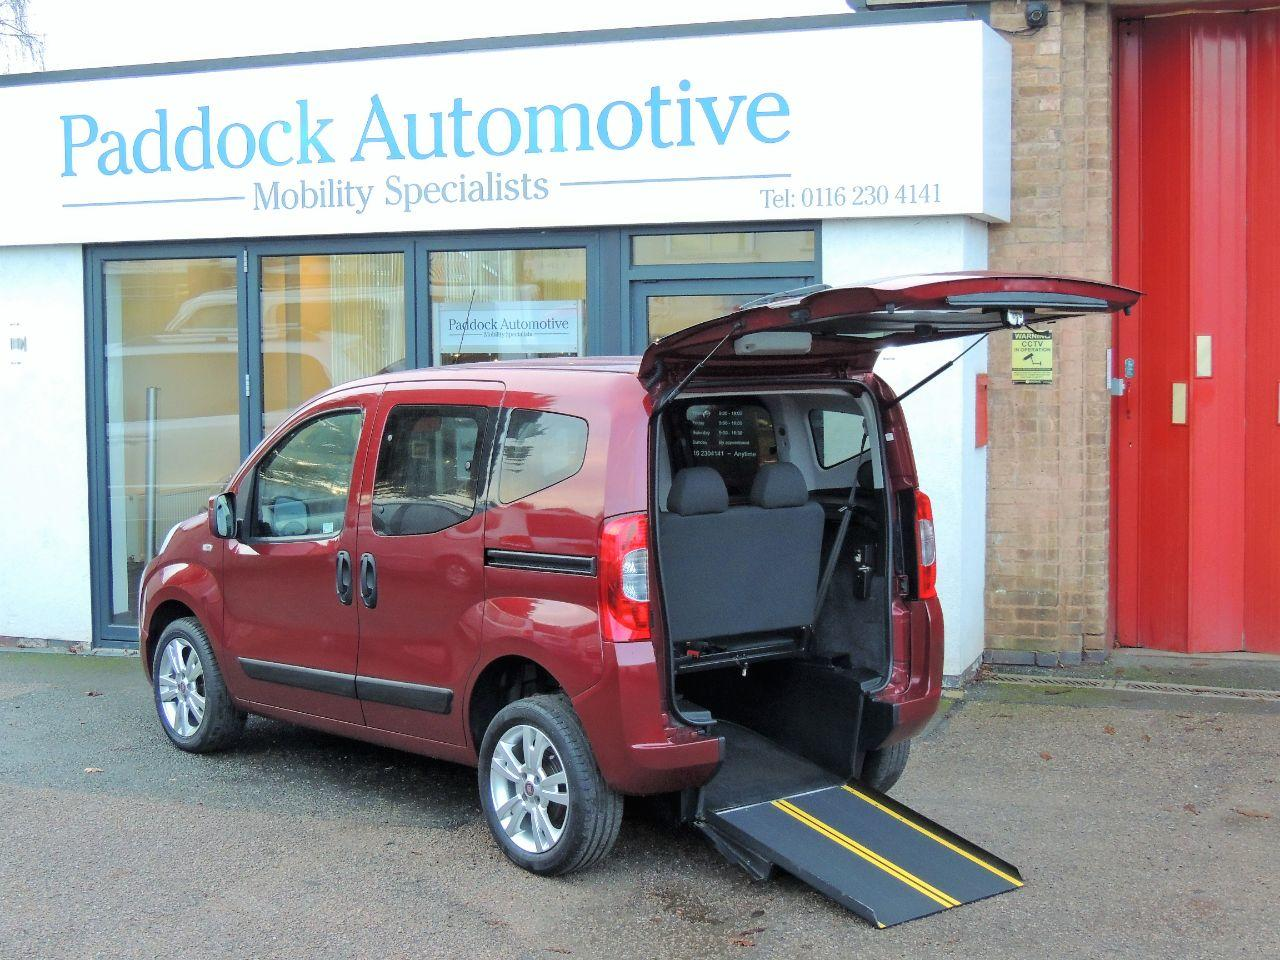 Fiat Qubo 1.3 Multijet MyLife 5dr Dualogic [Start Stop] Wheelchair Adapted Diesel Ruby Red Mica